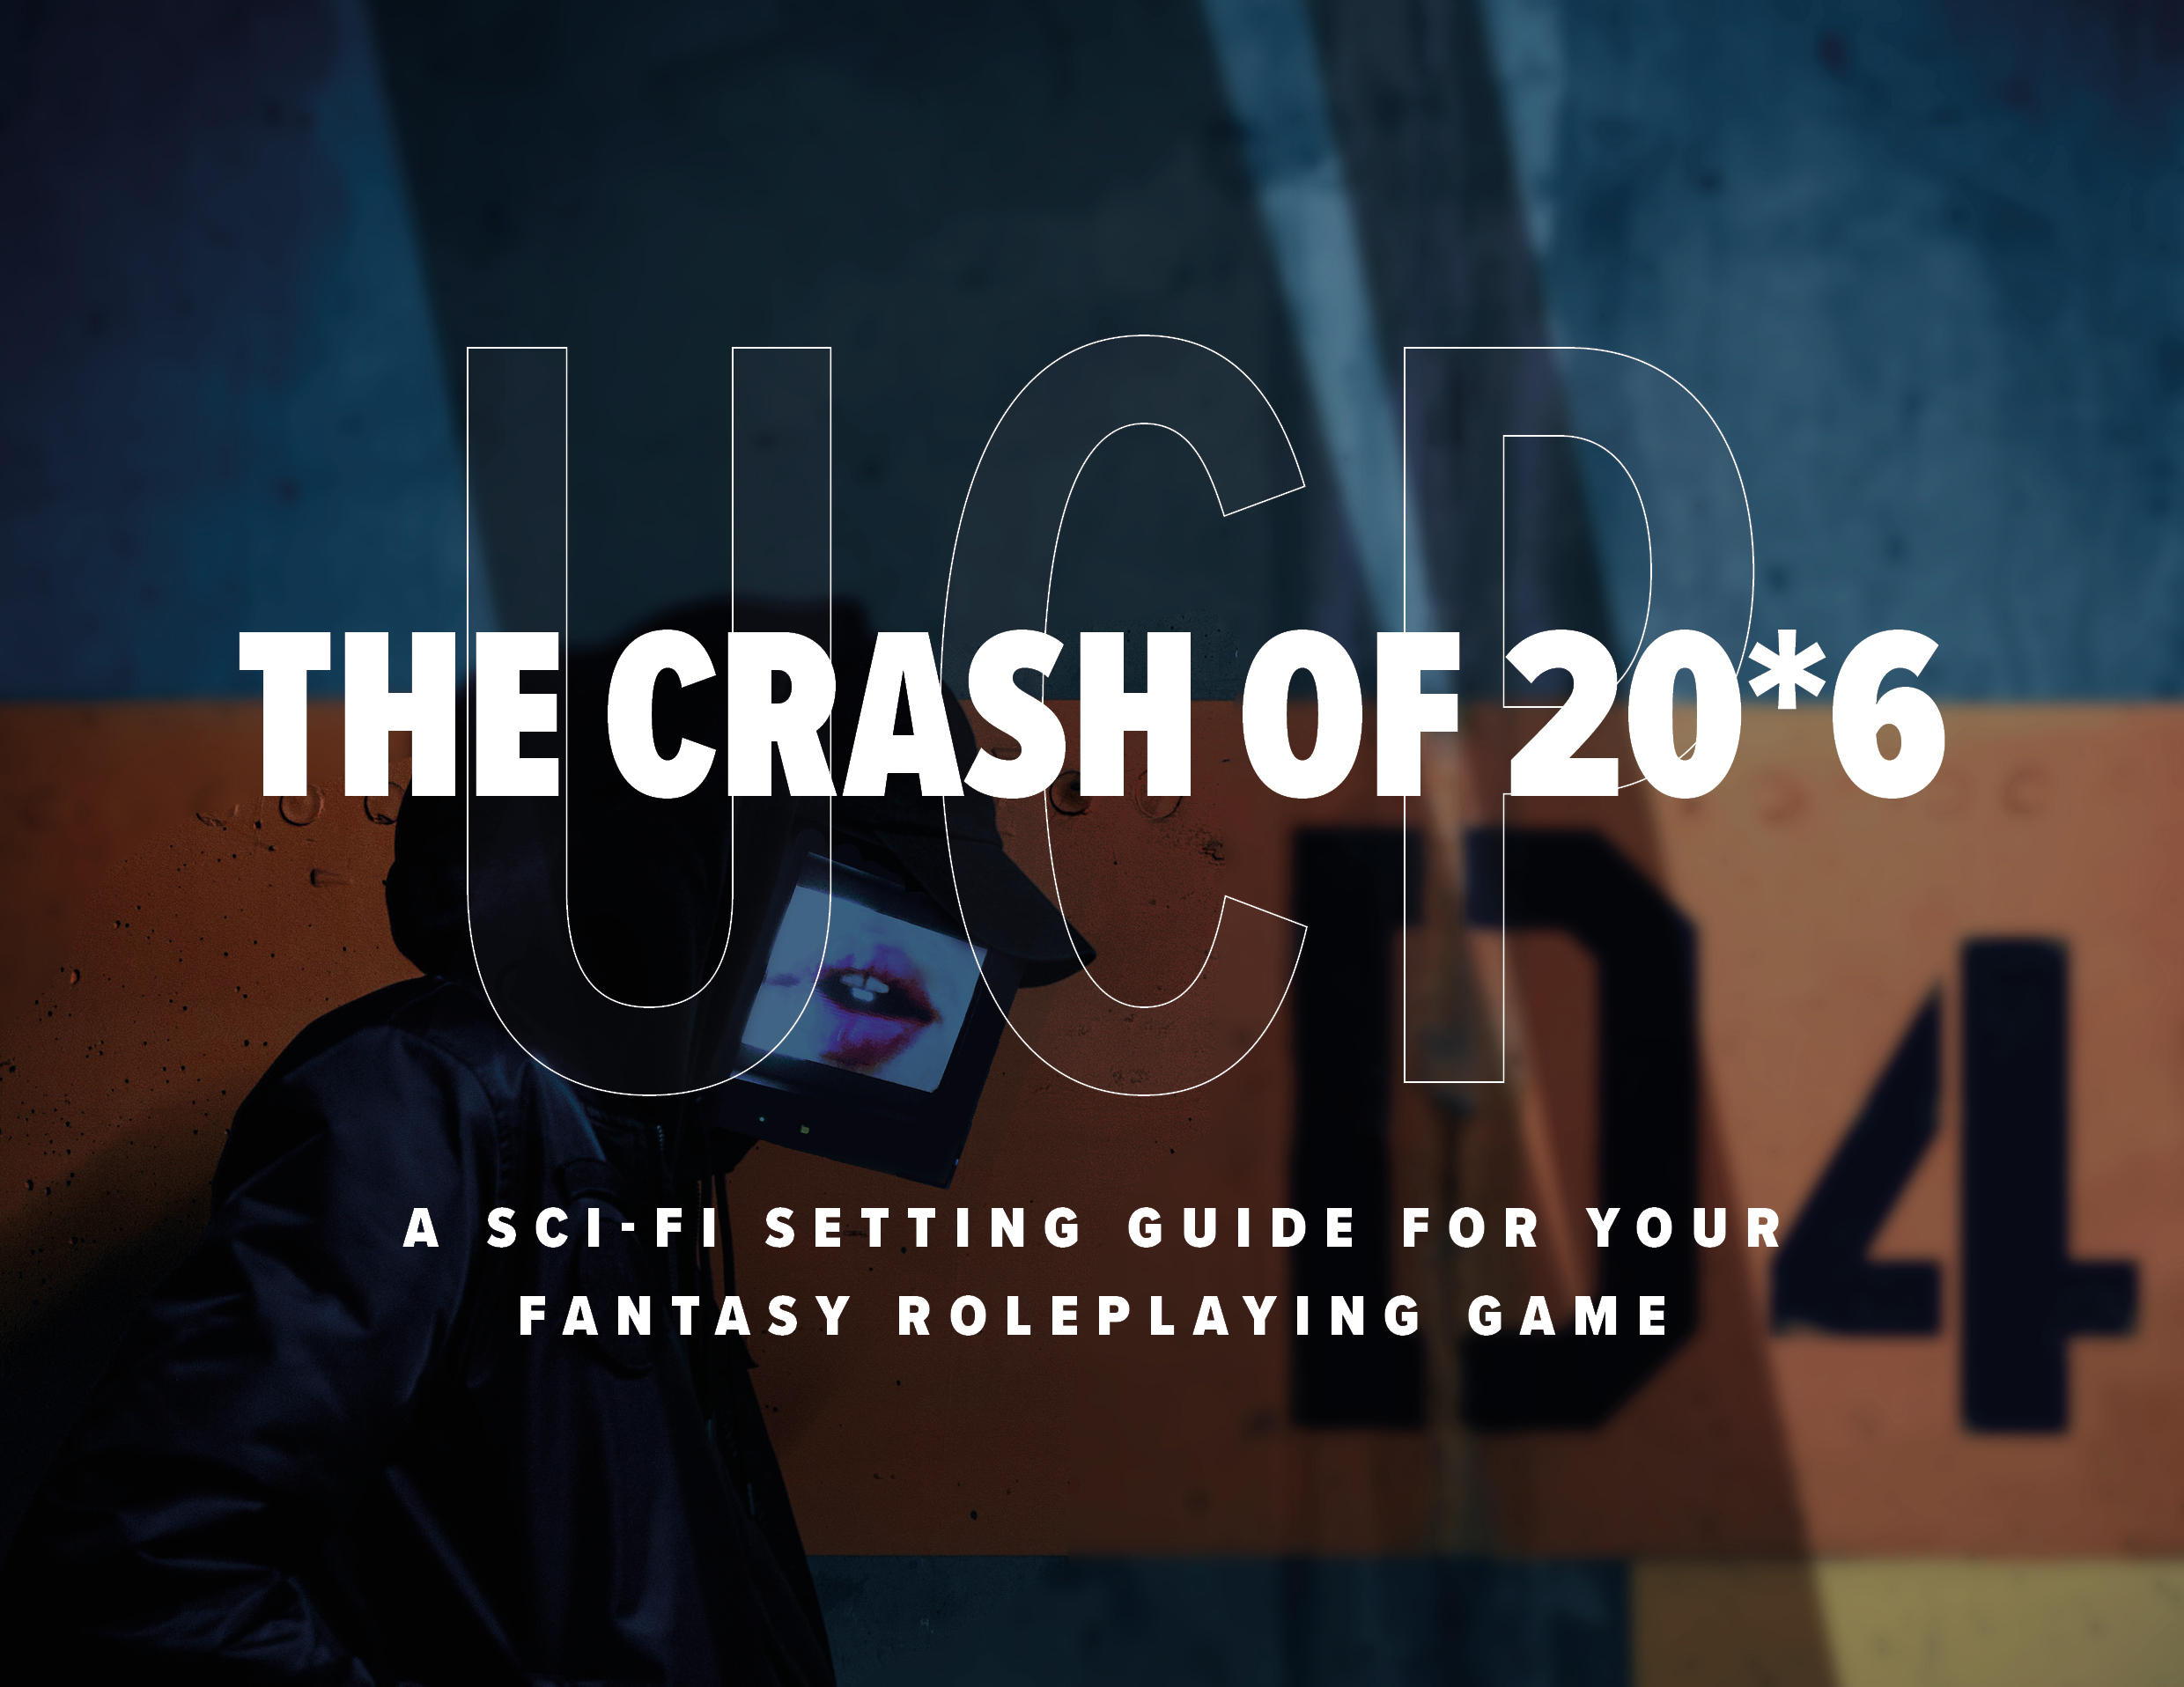 The Crash of 20*6 | A sci-fi setting supplement